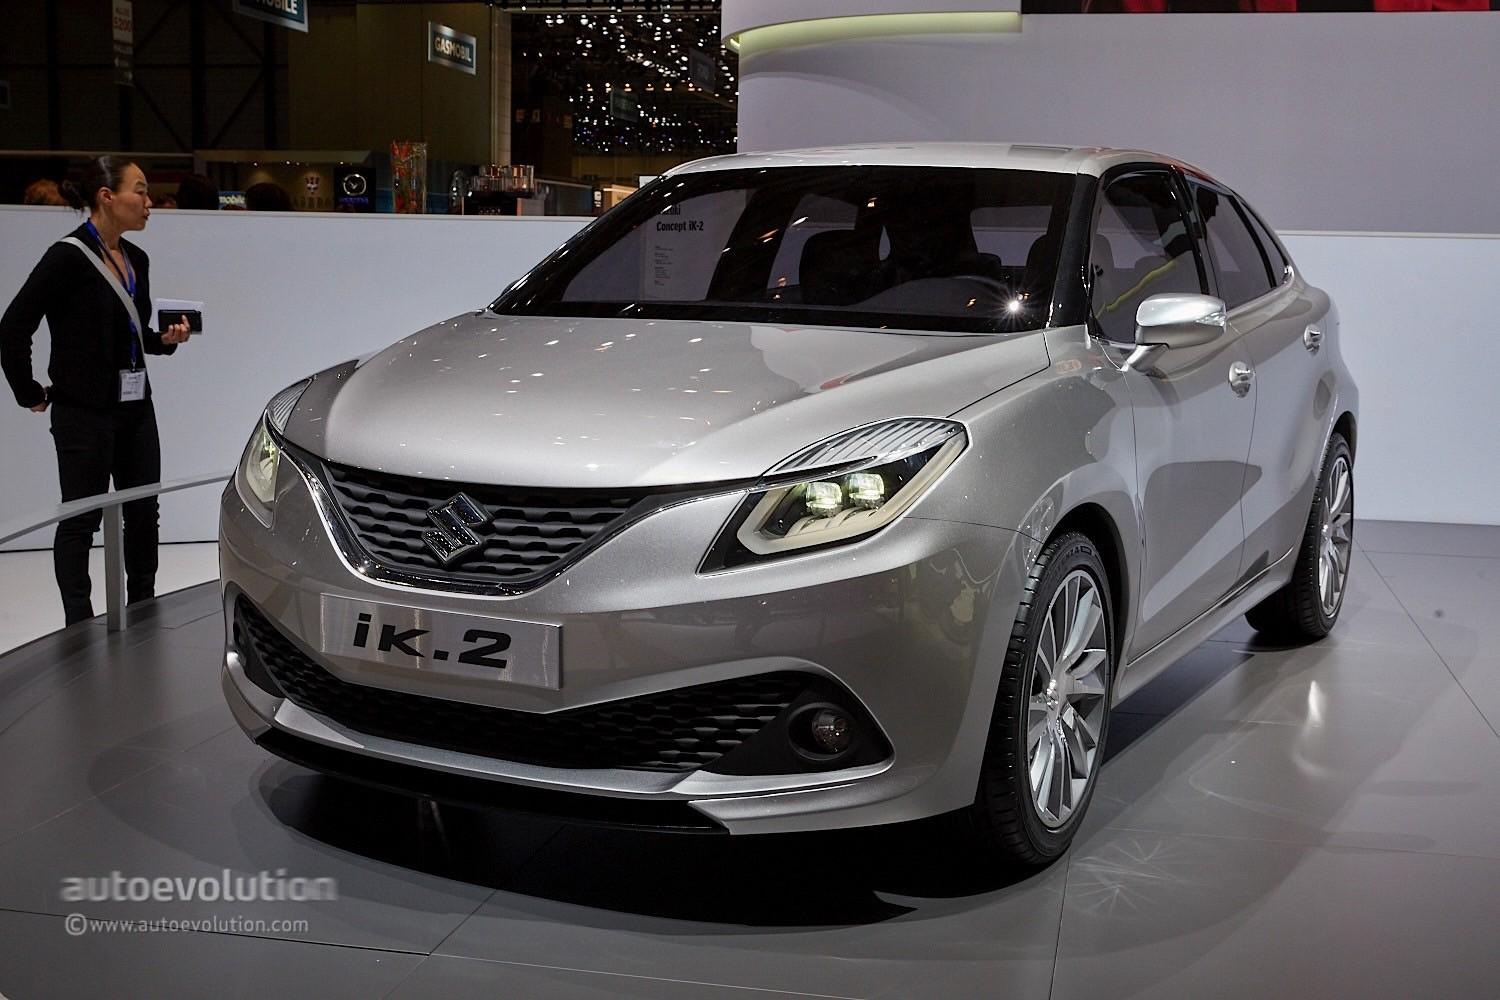 Suzuki Ik 2 Hatch Concept Breaks Free In Geneva